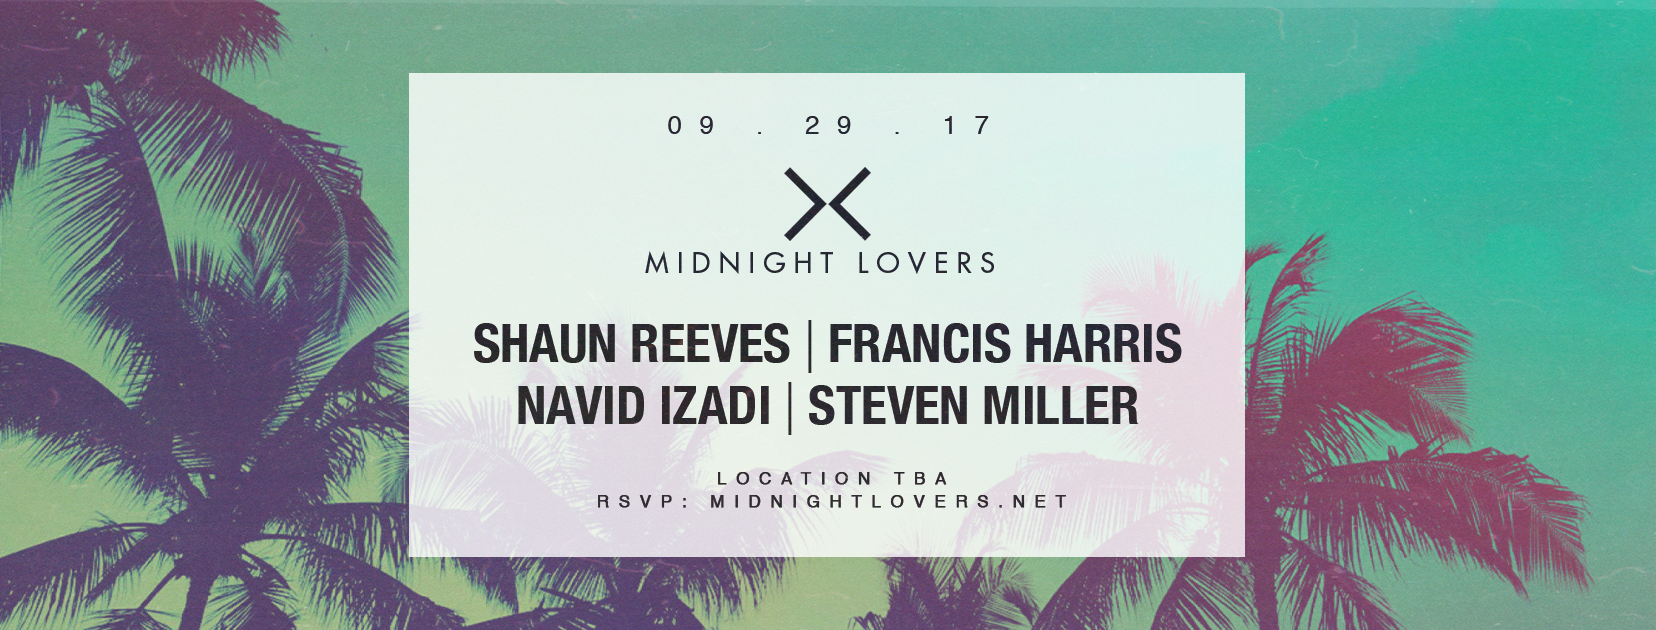 Shaun Reeves, Francis Harris, Navid Izadi, Steven Miller   Secret Location • Friday, September 29 • 11pm - 6:00am  •   DISCOUNTED TICKET   •